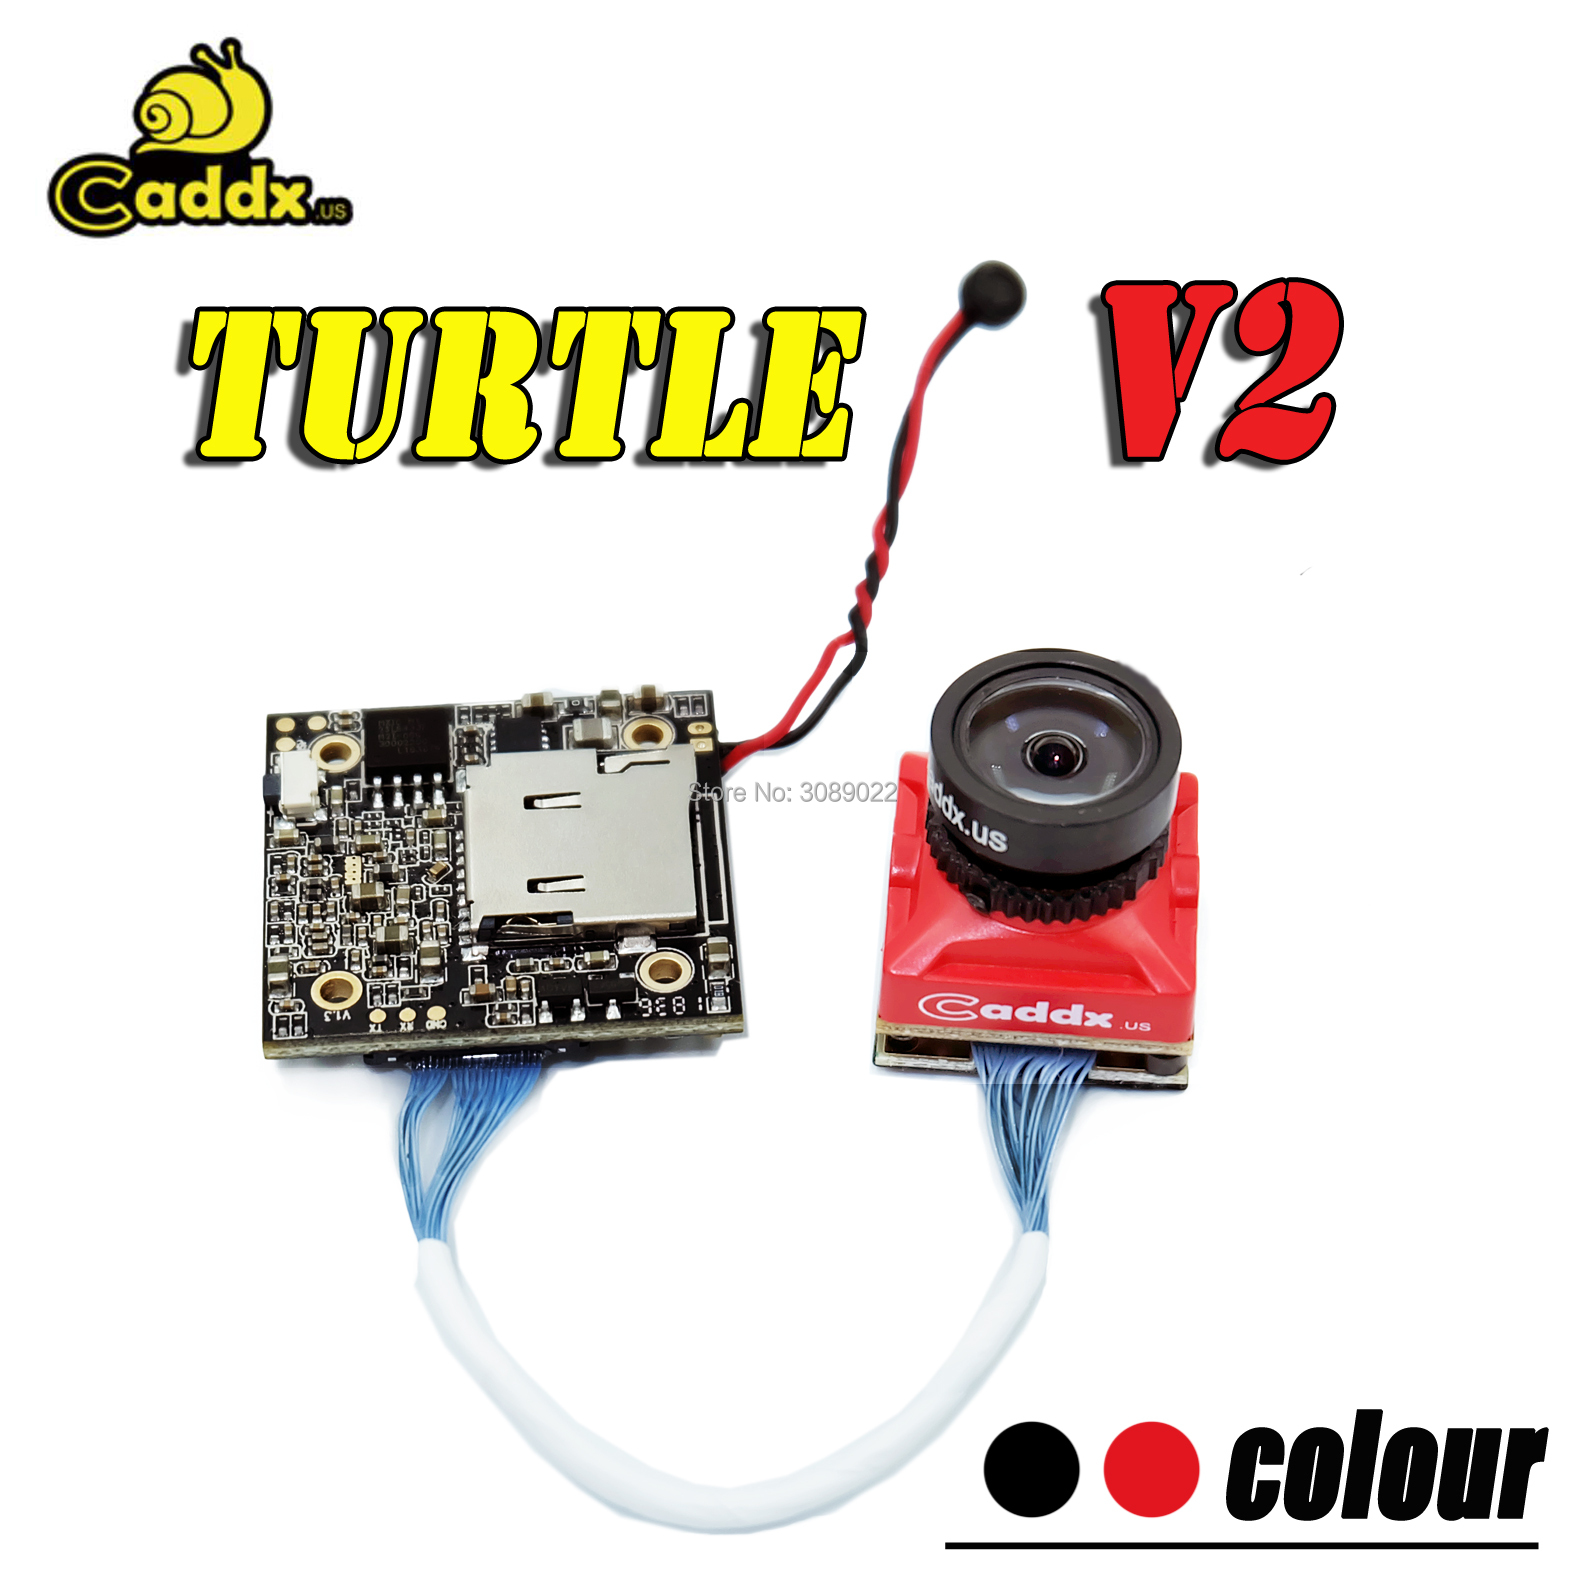 Caddx Turtlet V2 1080P 60fps 2.7 Inch 800TVL HD FPV Camera FOV 155 Degree NTSC / PAL changeable FPV Action Camera For RC drone-in Parts & Accessories from Toys & Hobbies    1